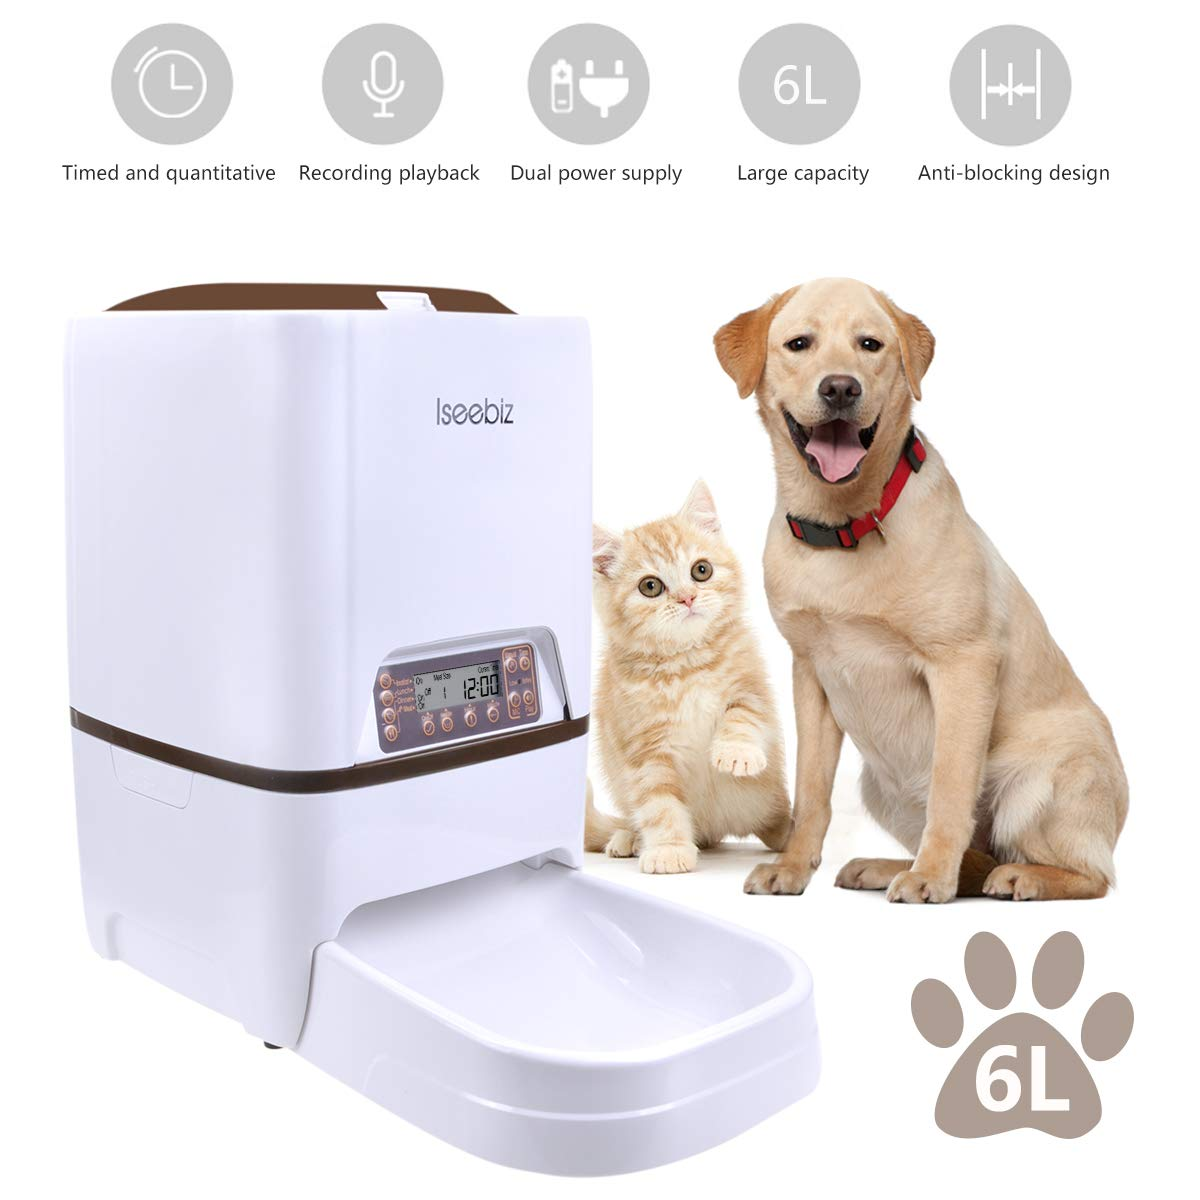 Automatic Dog Feeder, Iseebiz Dog Cat Feeder 6 Liter Food Dispenser with Voice Recorder,Feeding Portion and Timer Programmable, Portion Control,4 Meal a Day for Pet by Iseebiz